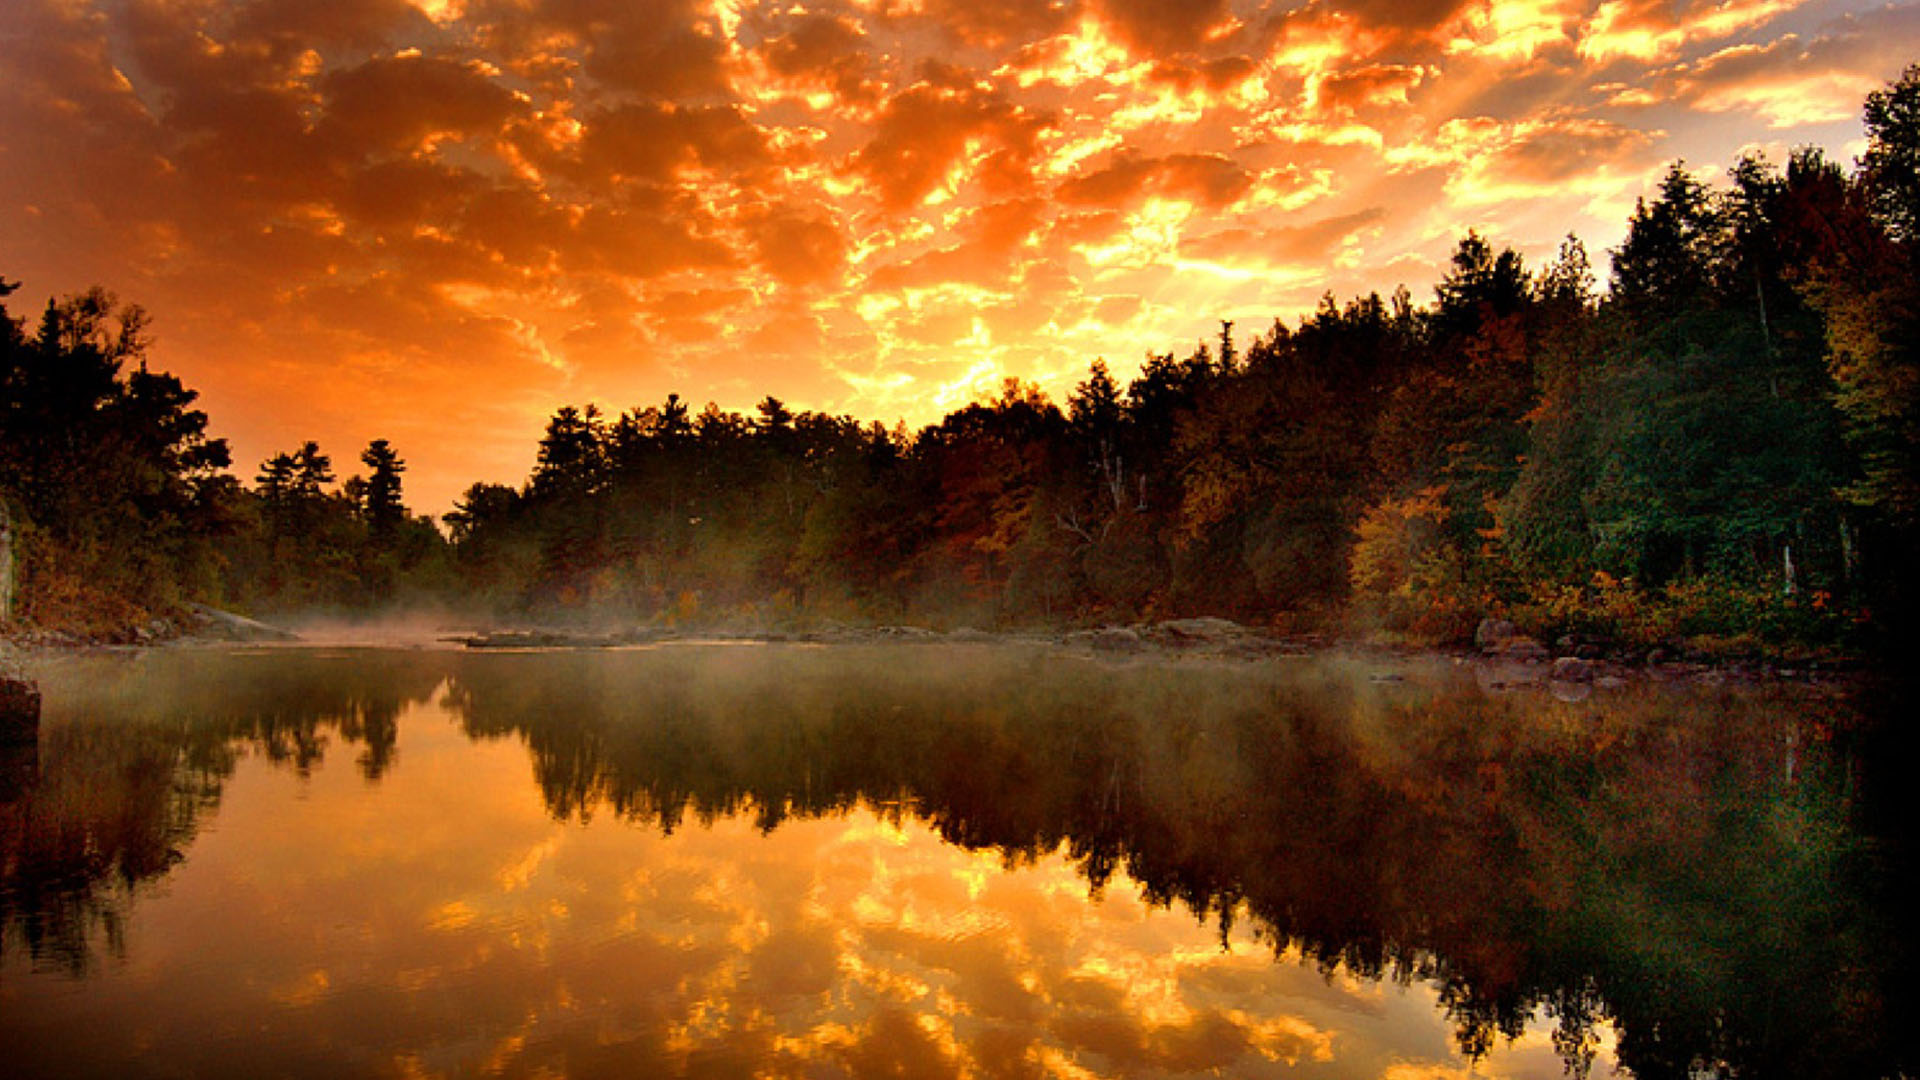 Fall Morning Sun Wallpaper Full Hd Nature Wallpaper 1080p For Desktop With River And